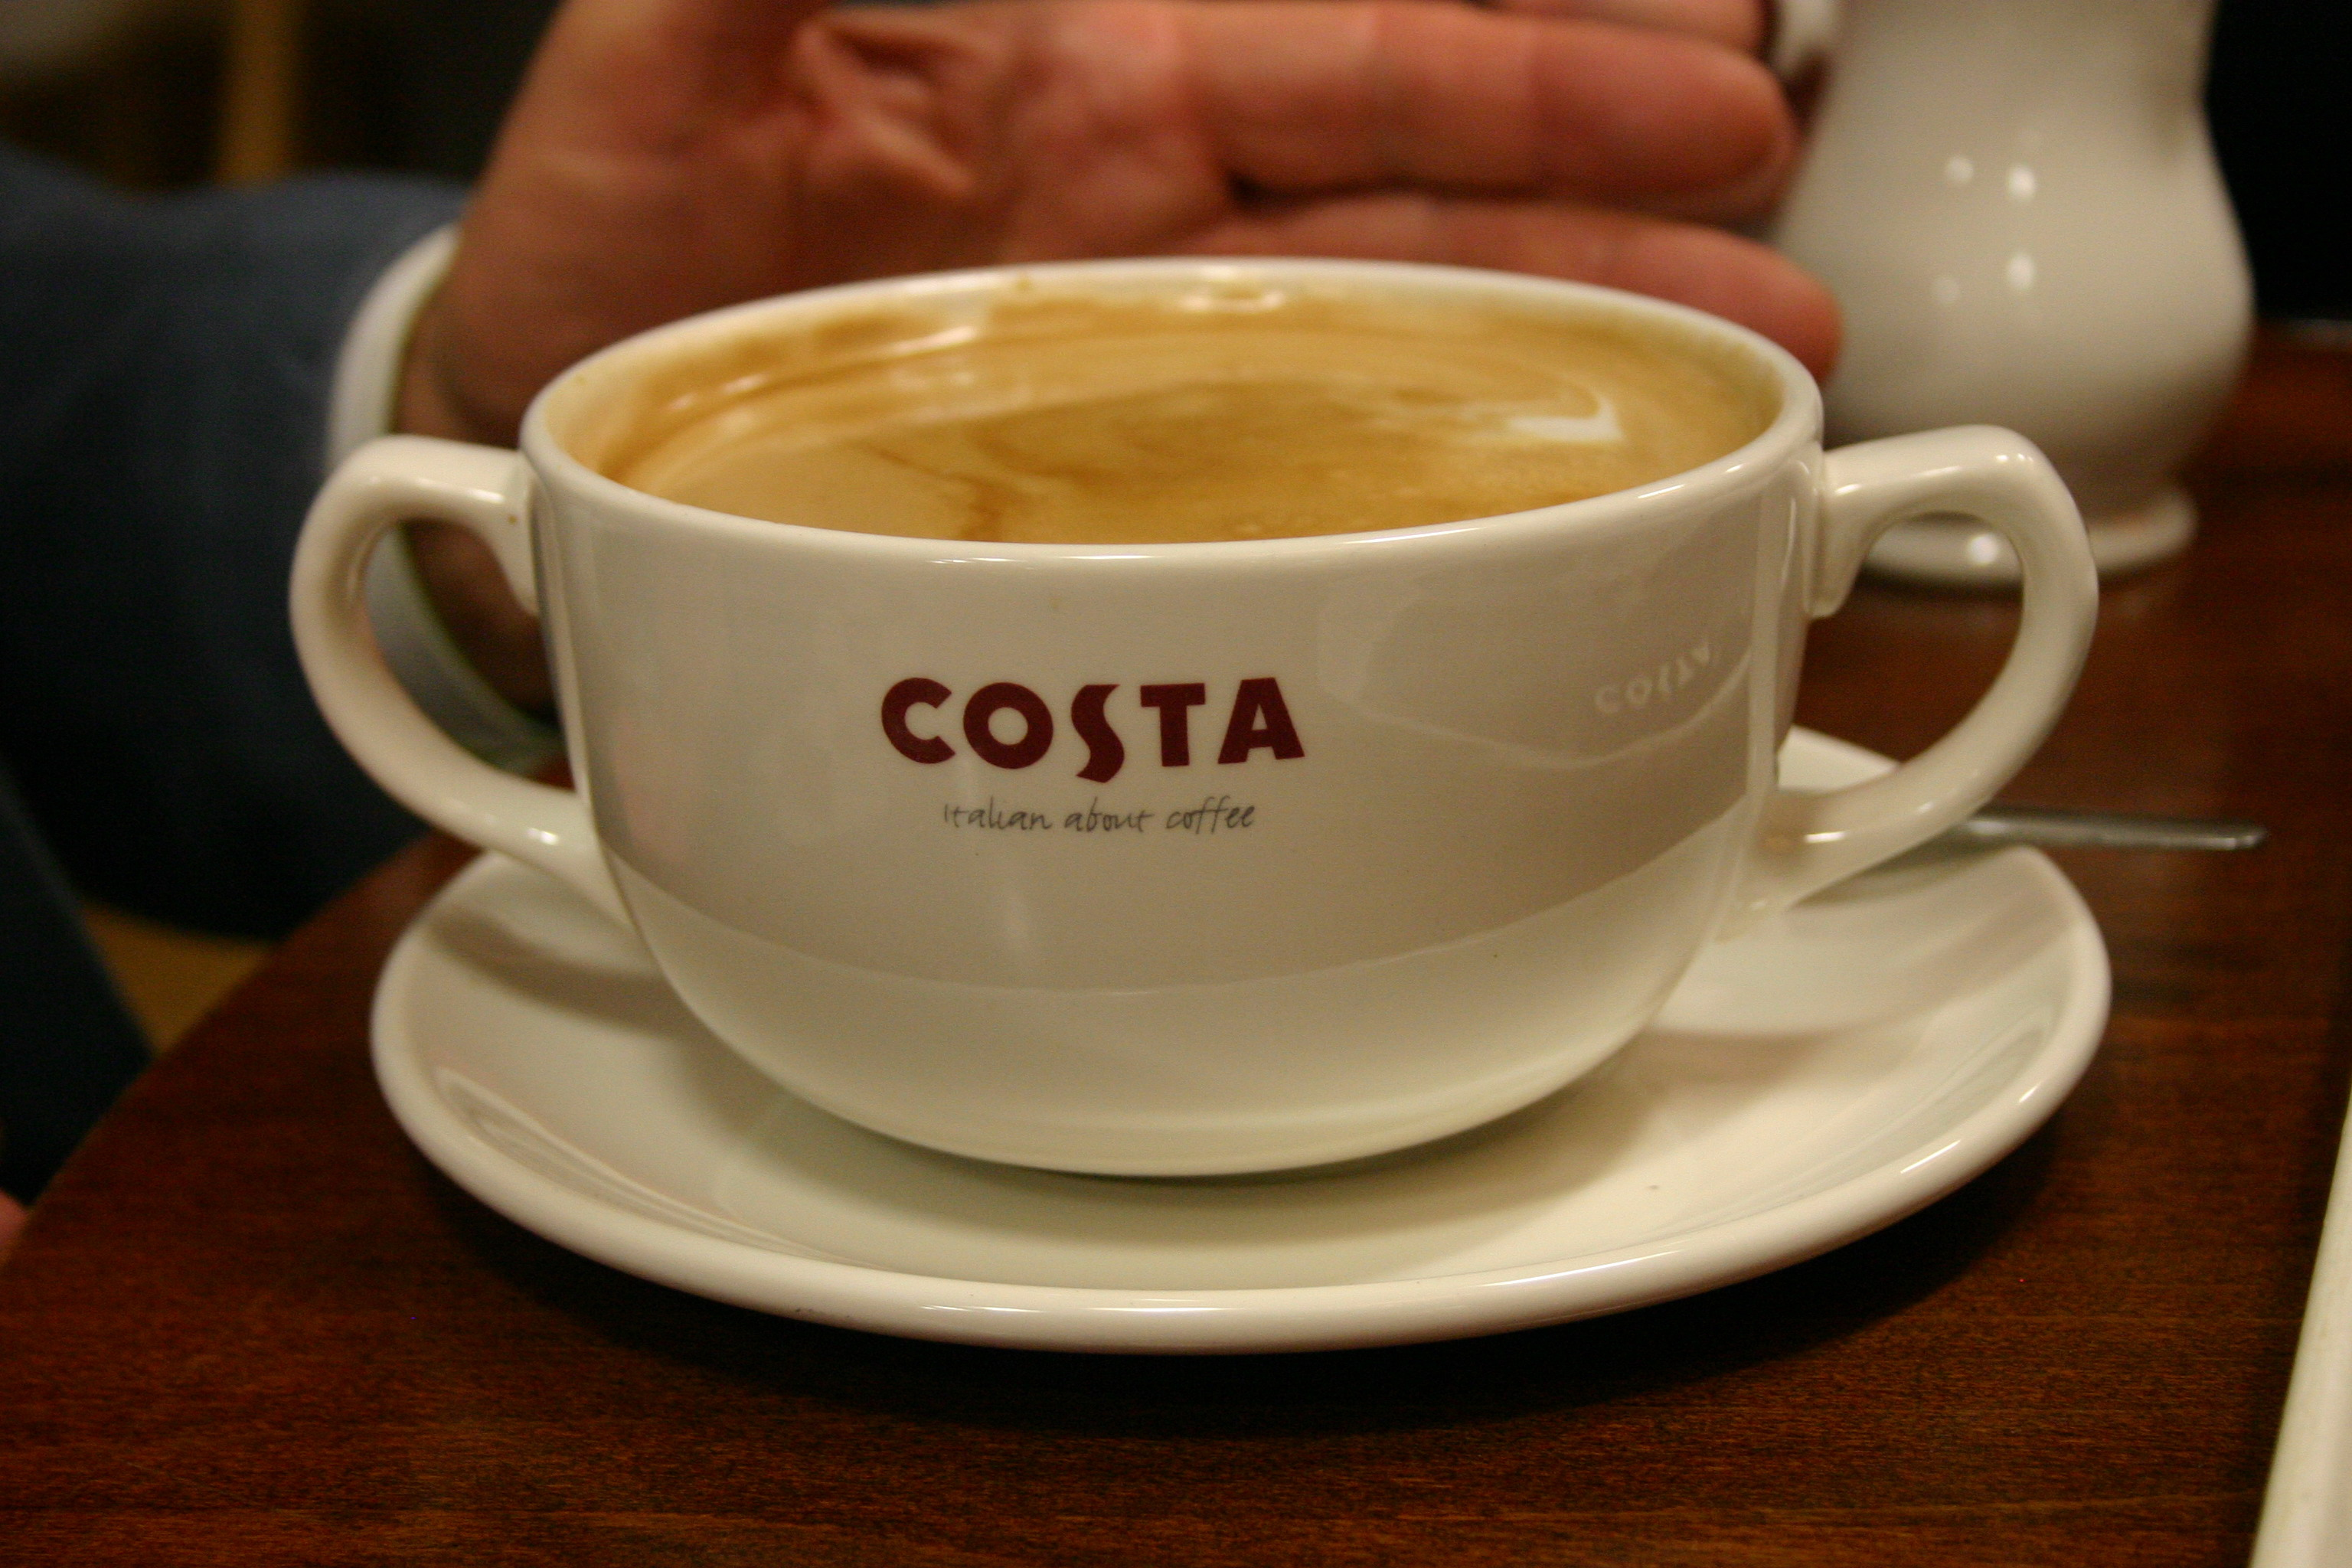 costa coffee brand promise